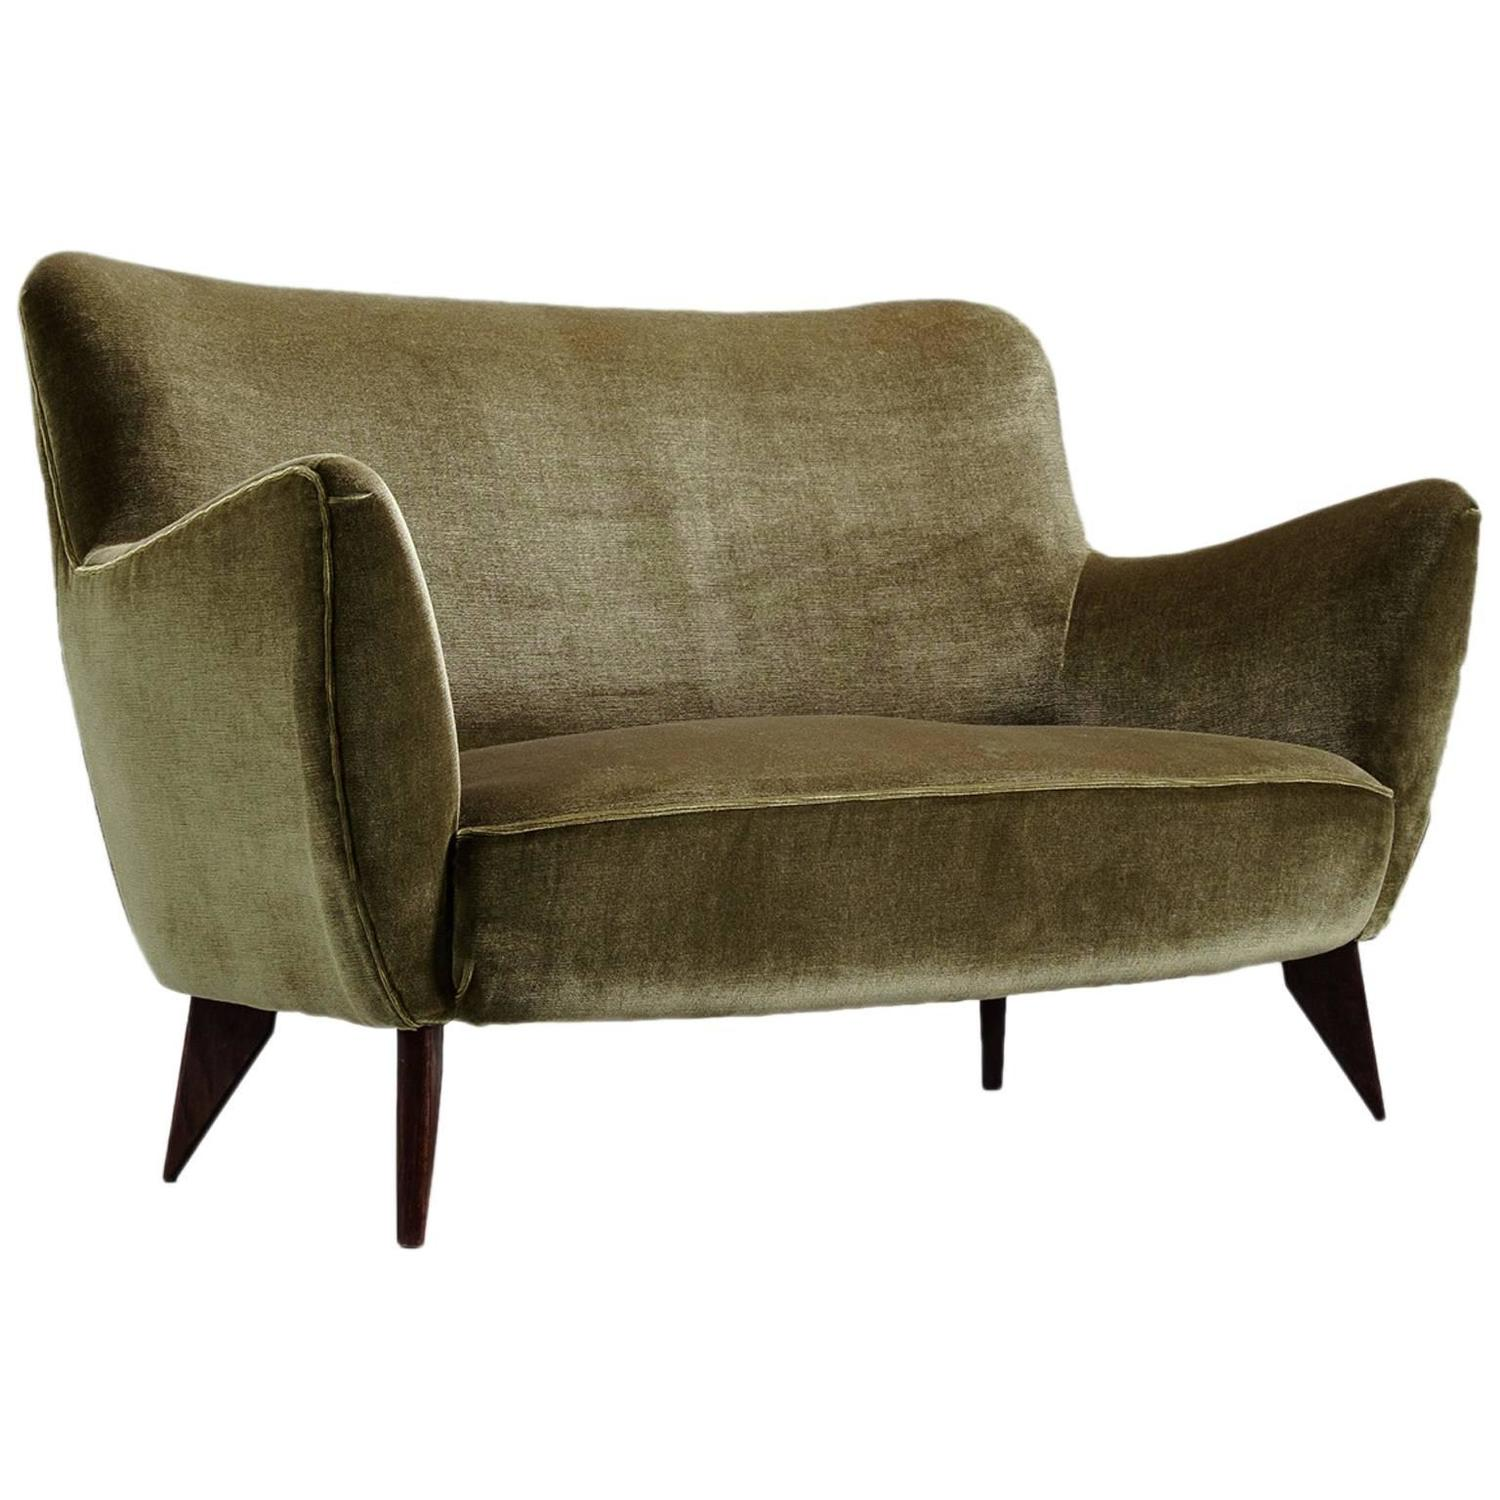 guglielmo veronesi curved sofa for sale at 1stdibs